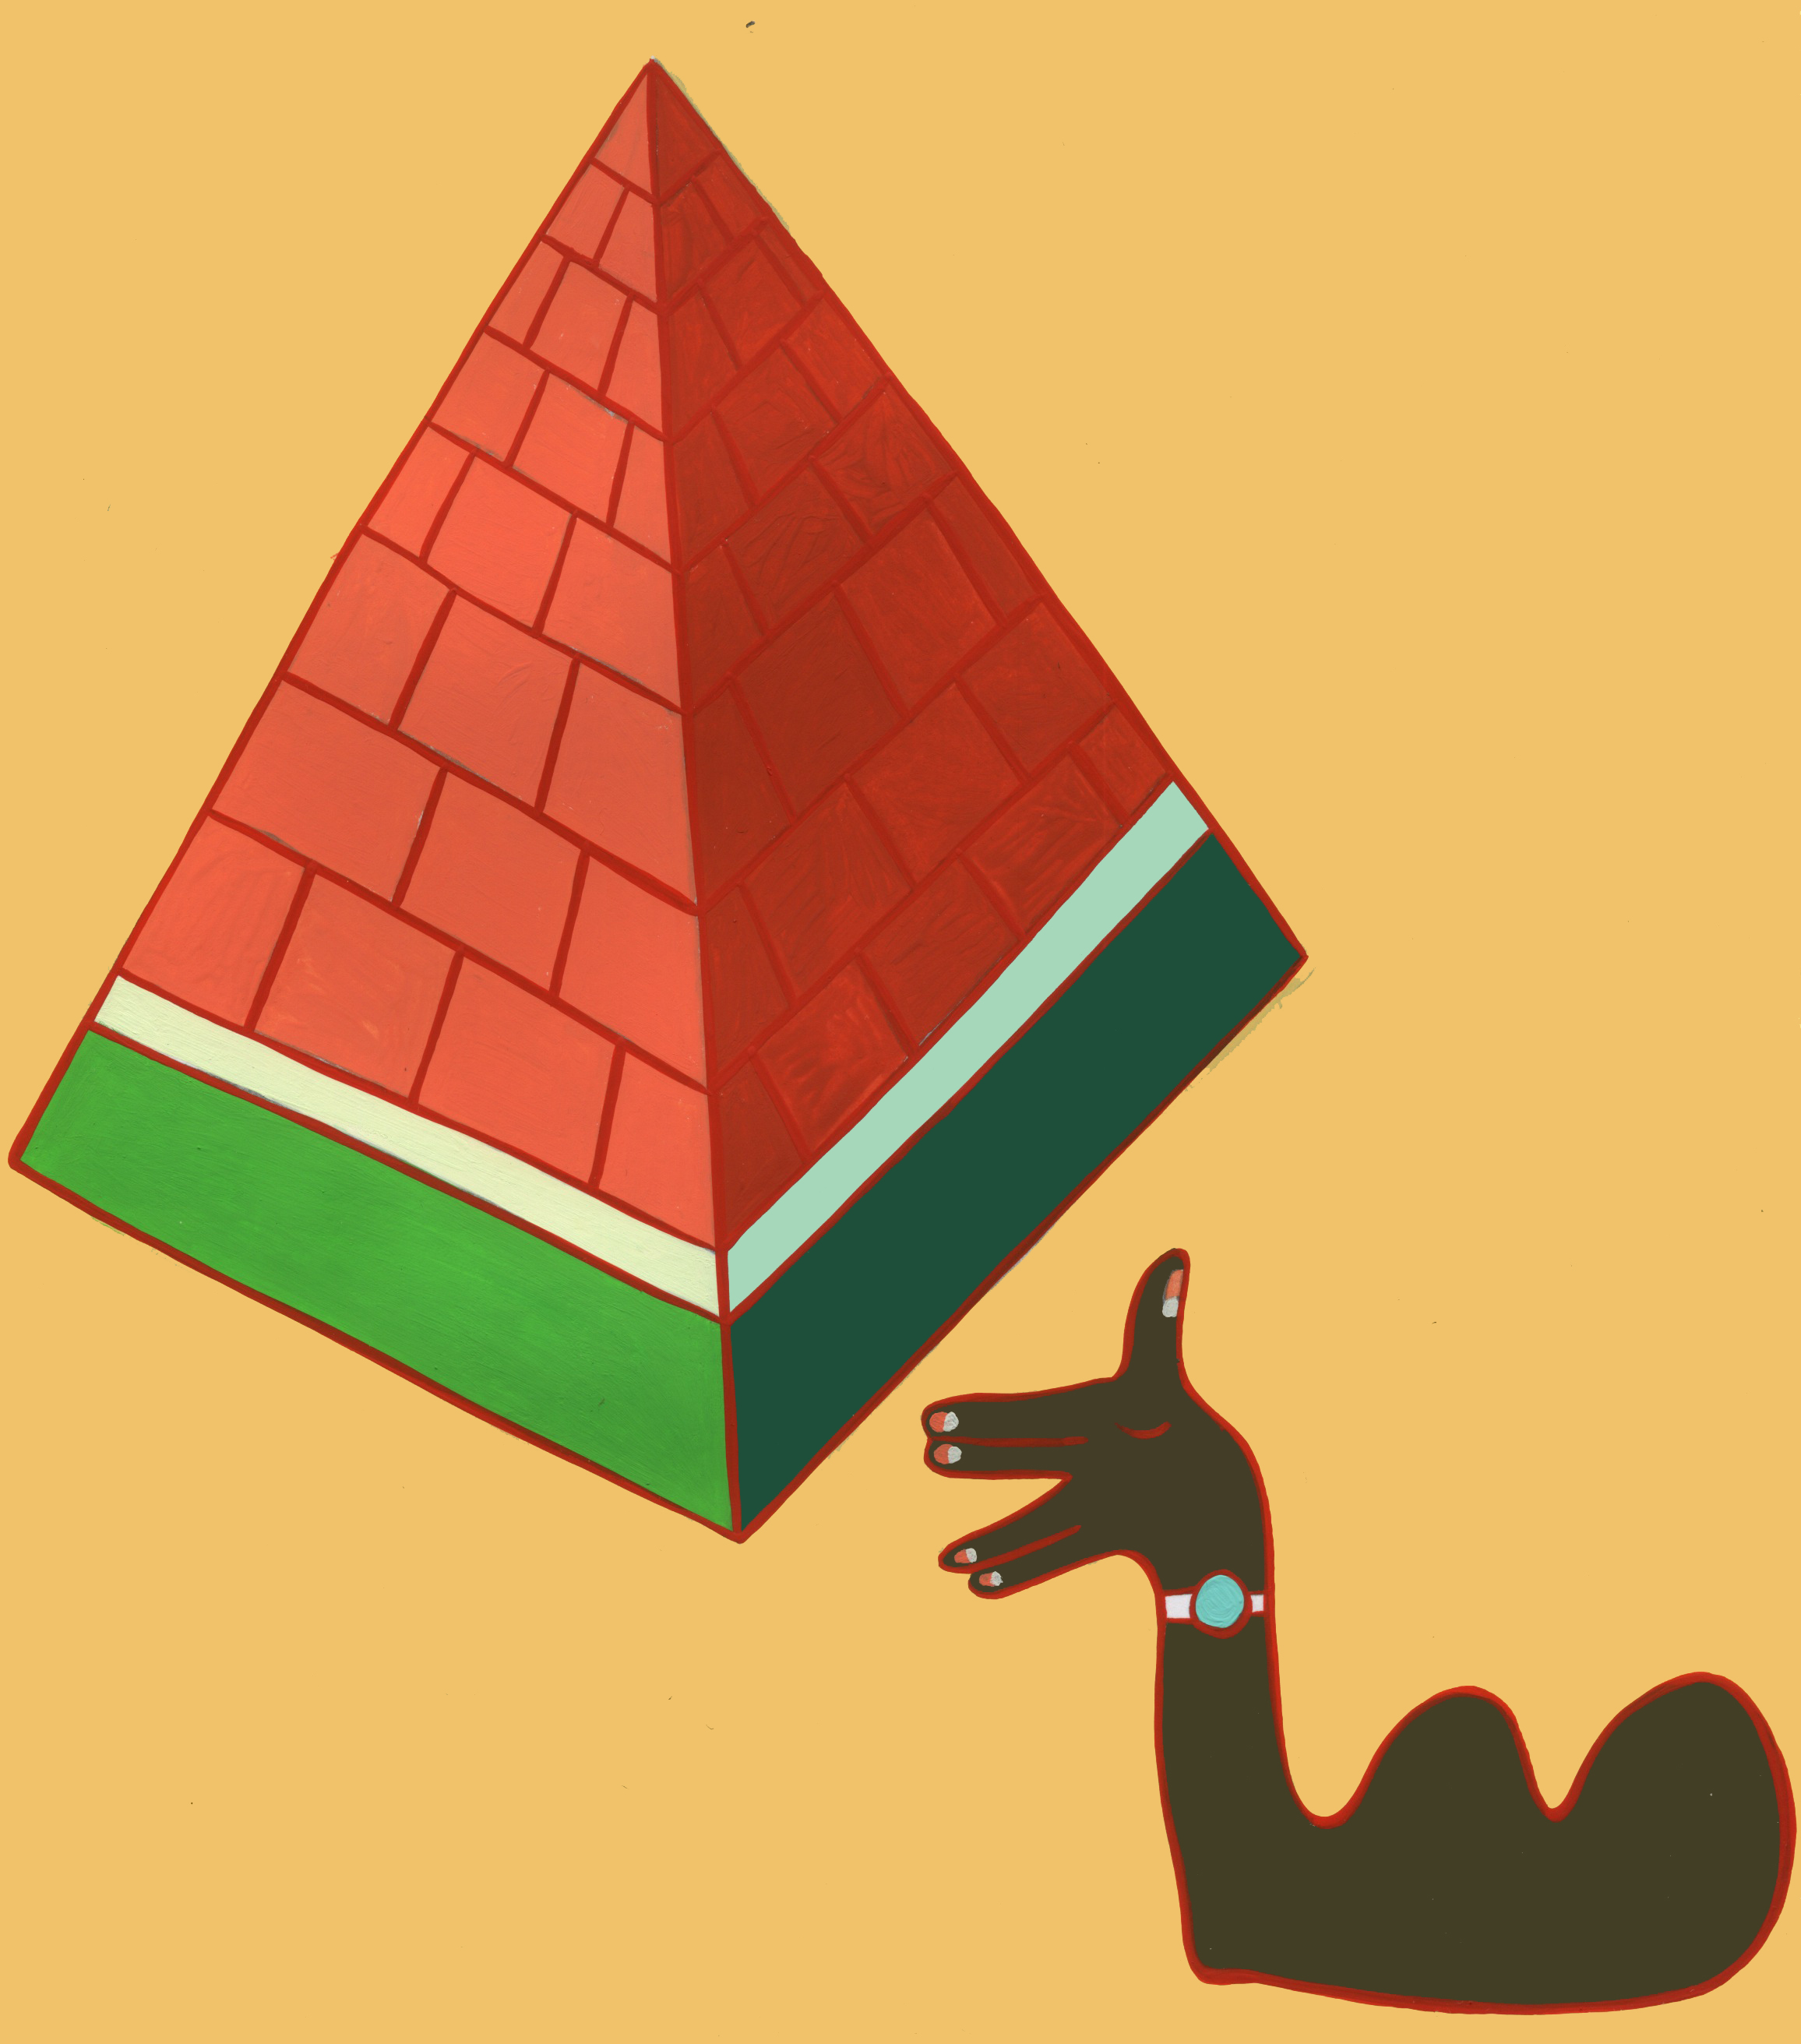 60_watermelonpyramid.jpeg